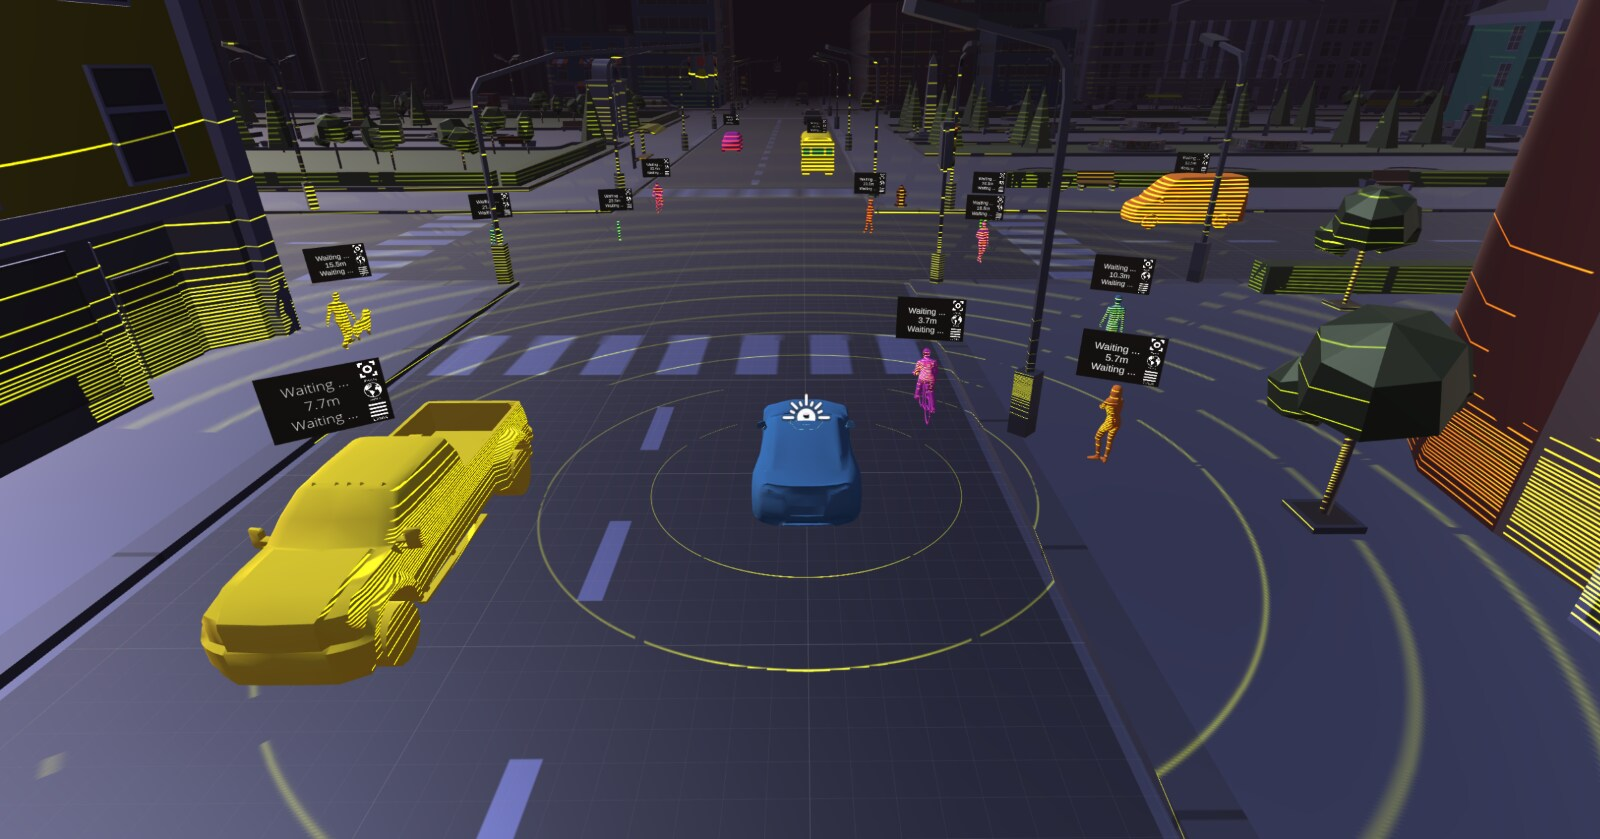 Lidar simulation, blue car is in the middle with yellow circles surrounding it